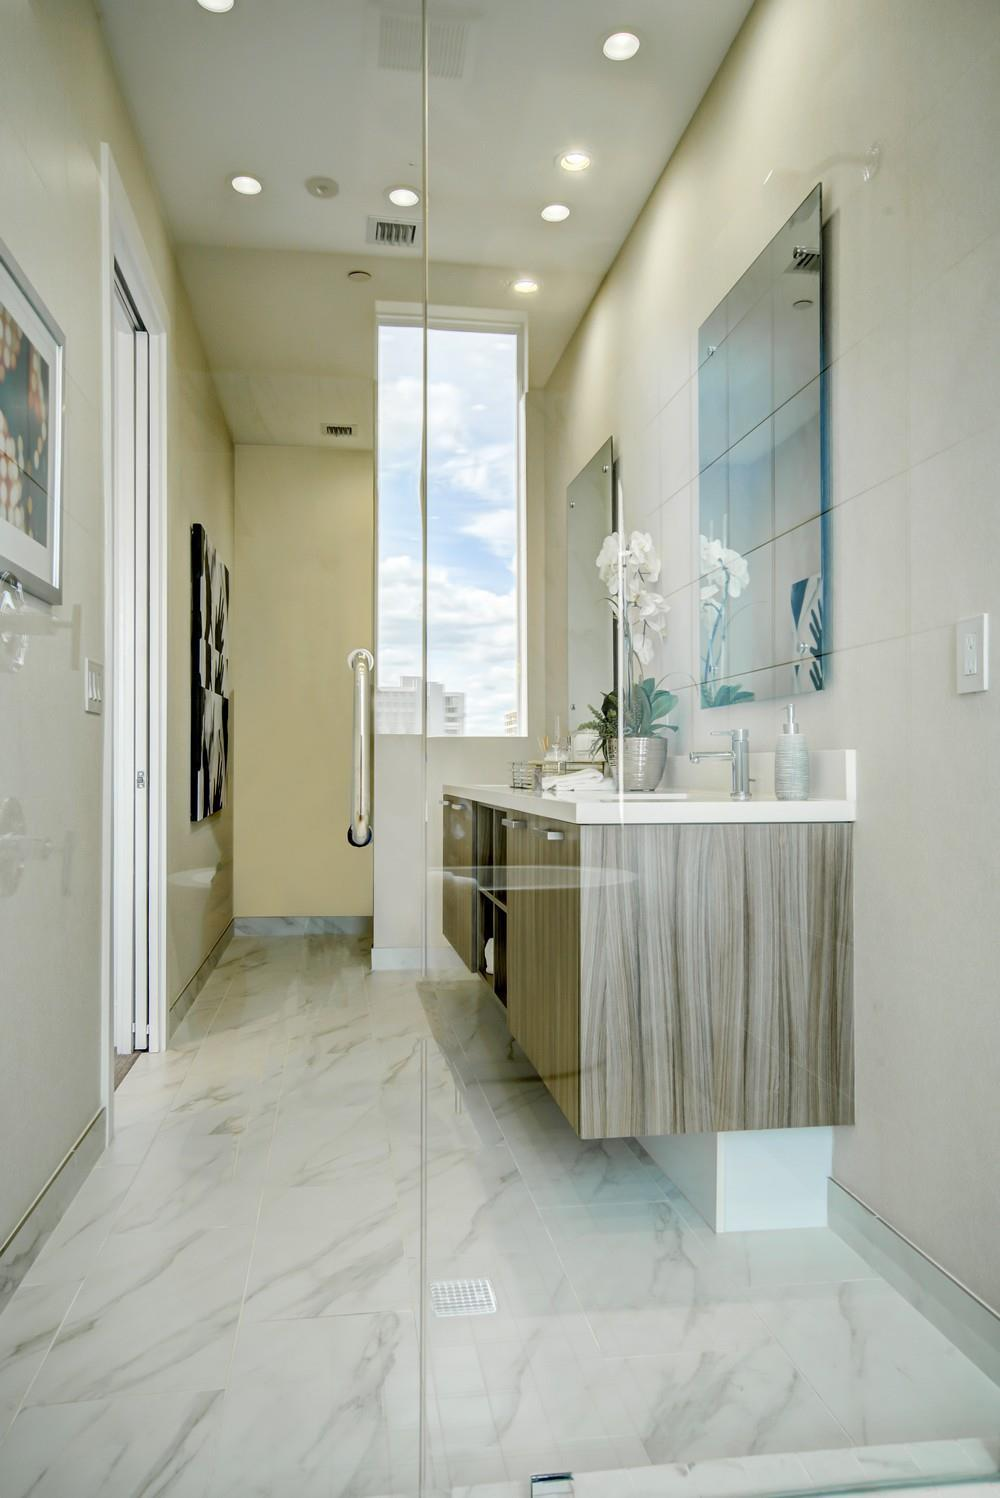 Bathroom featured in the Model C - West By Sobel Co in Broward County-Ft. Lauderdale, FL